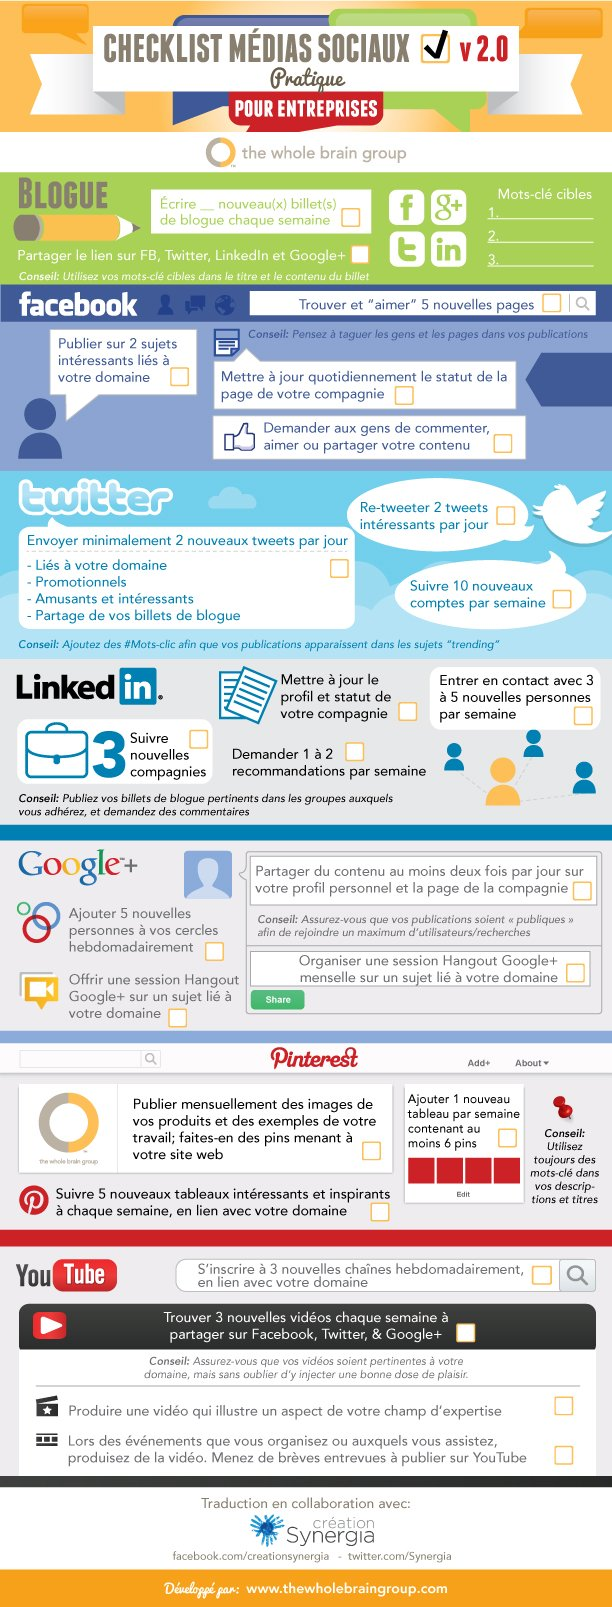 Social Media Checklist Infographic - French Translation